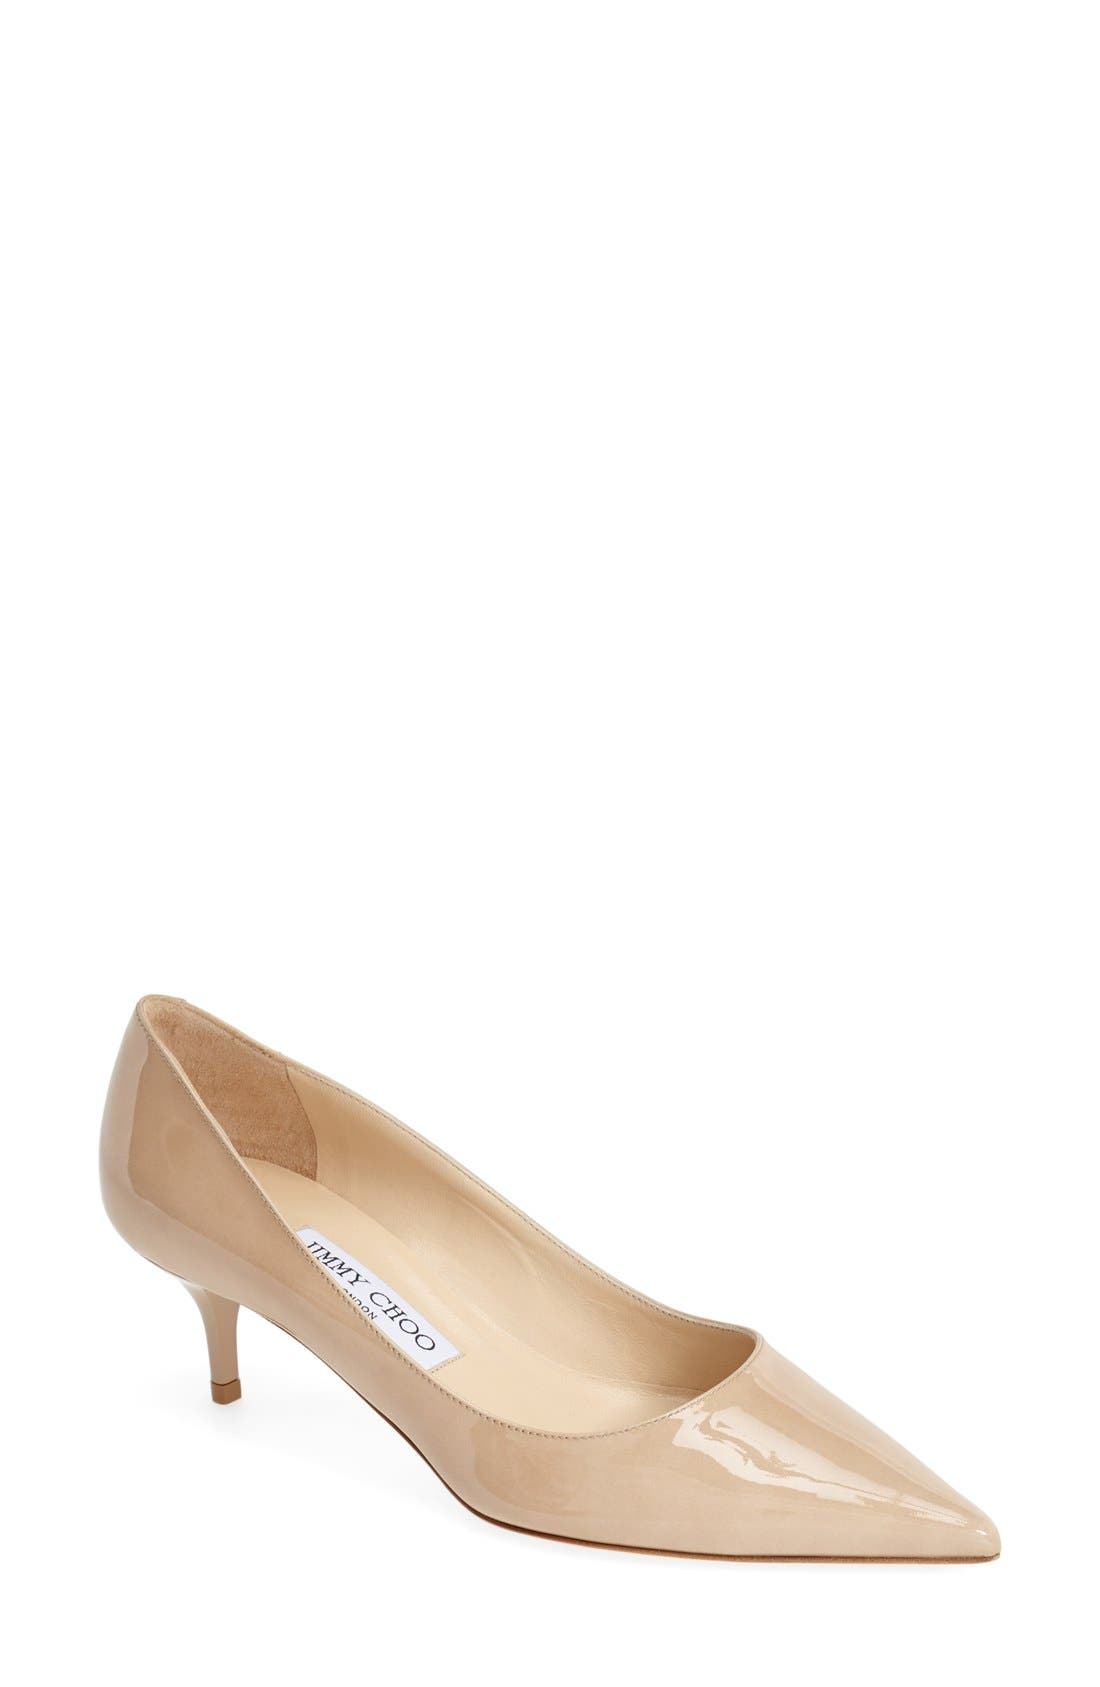 Alternate Image 1 Selected - Jimmy Choo 'Aza' Pointy Toe Pump